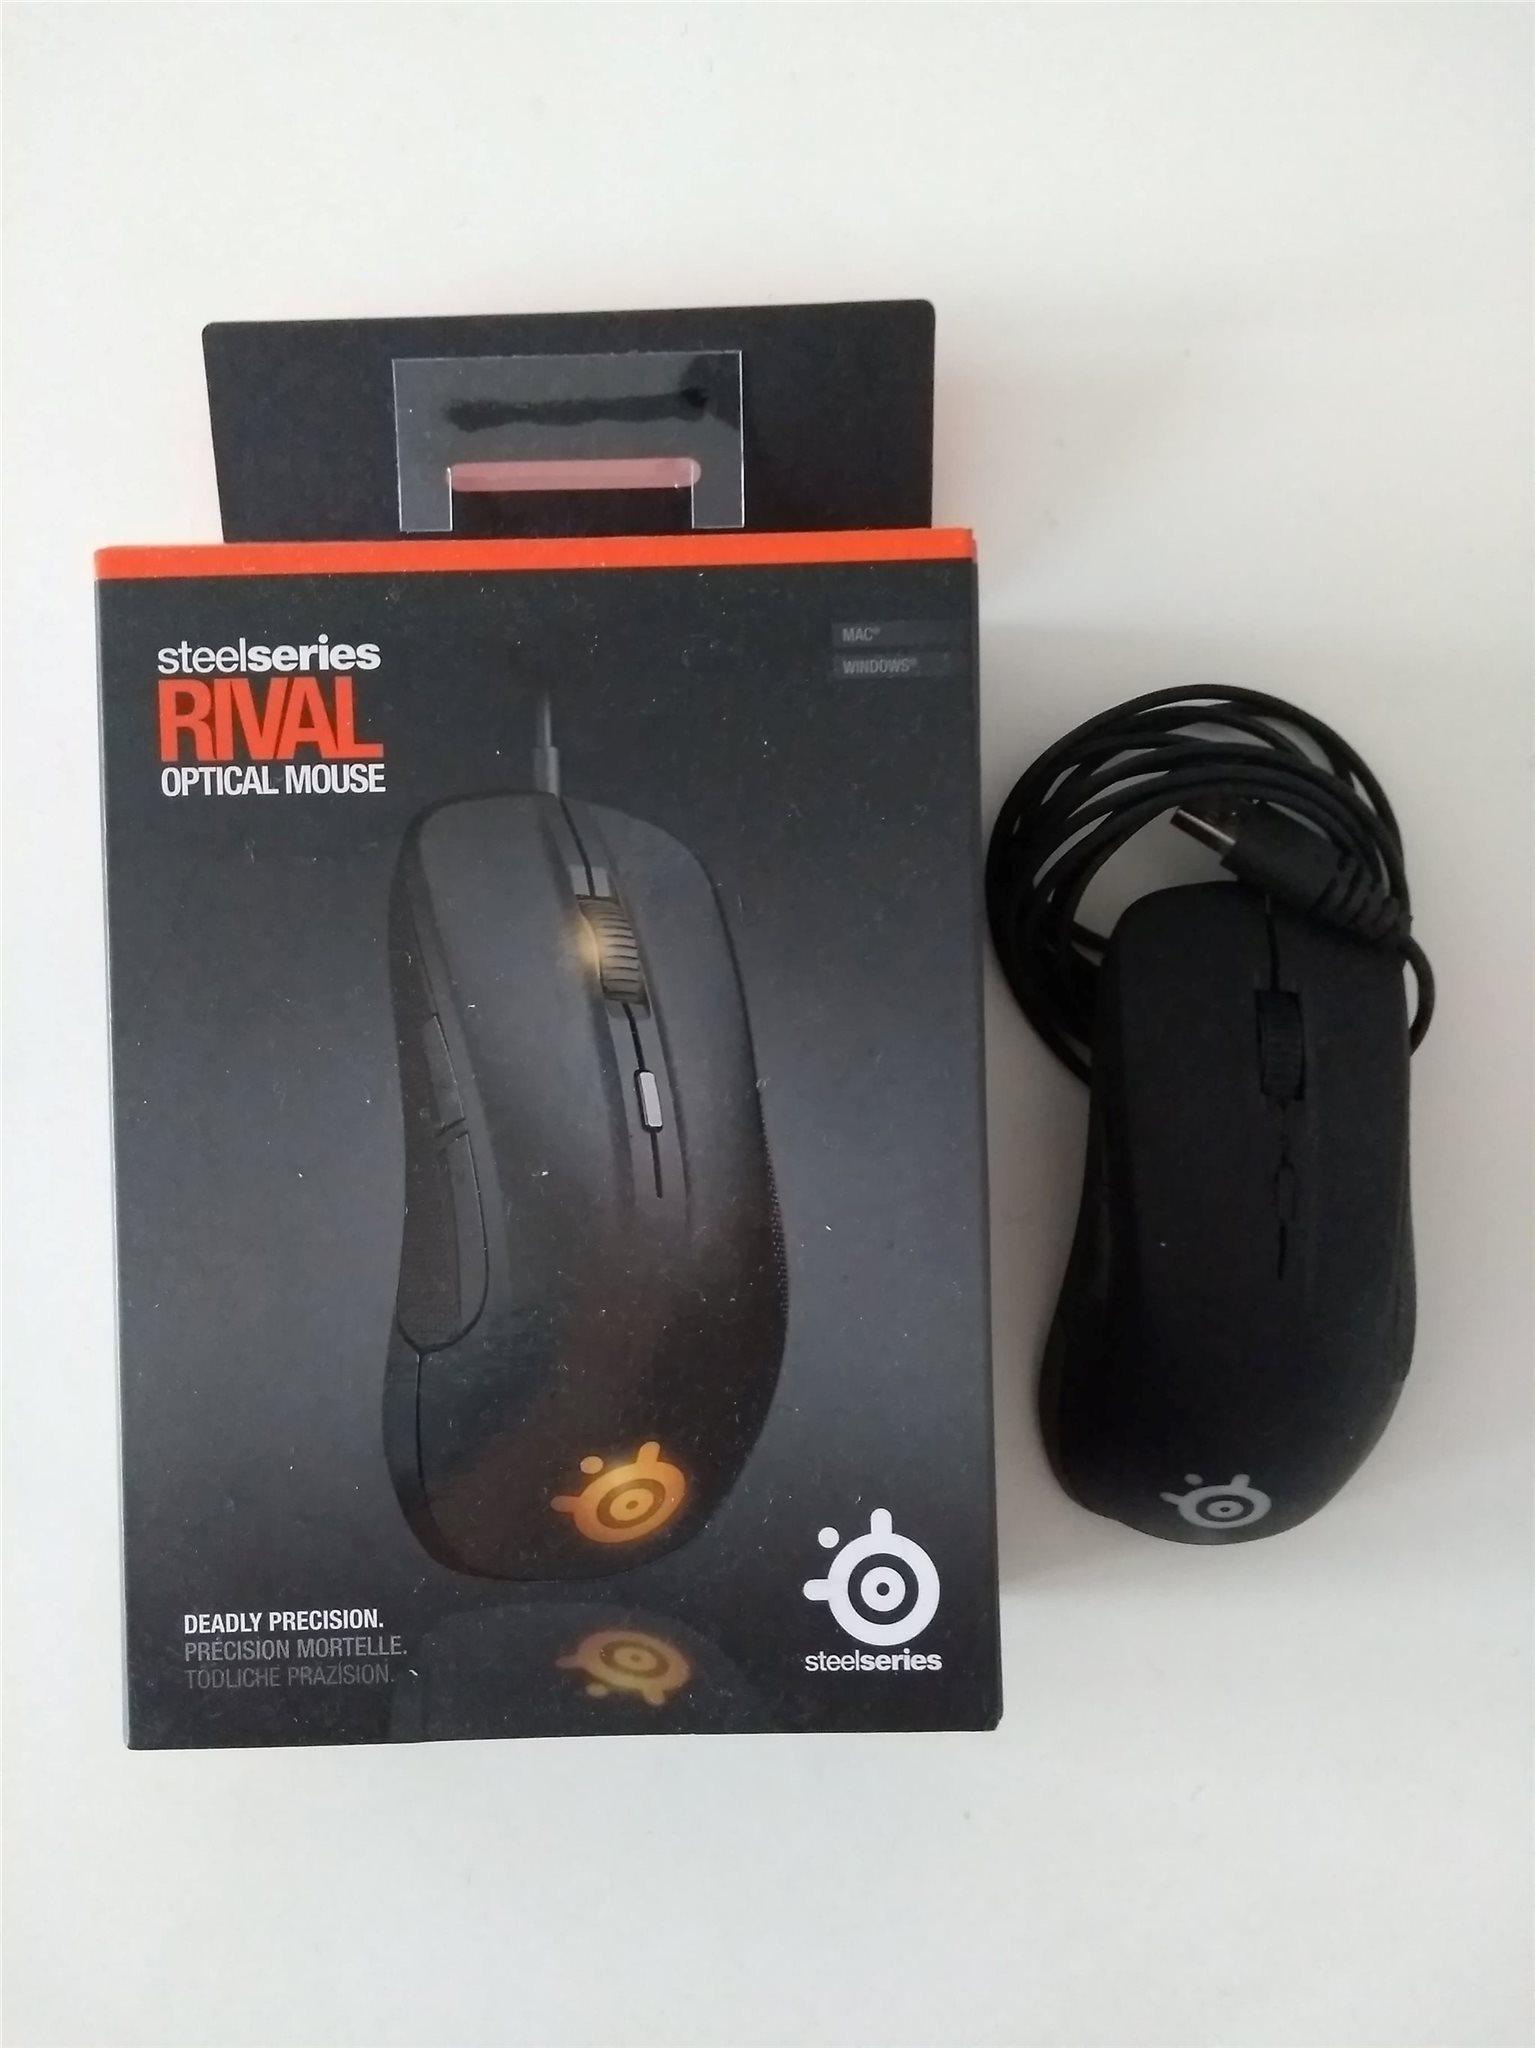 Steelseries Rival - Defekt